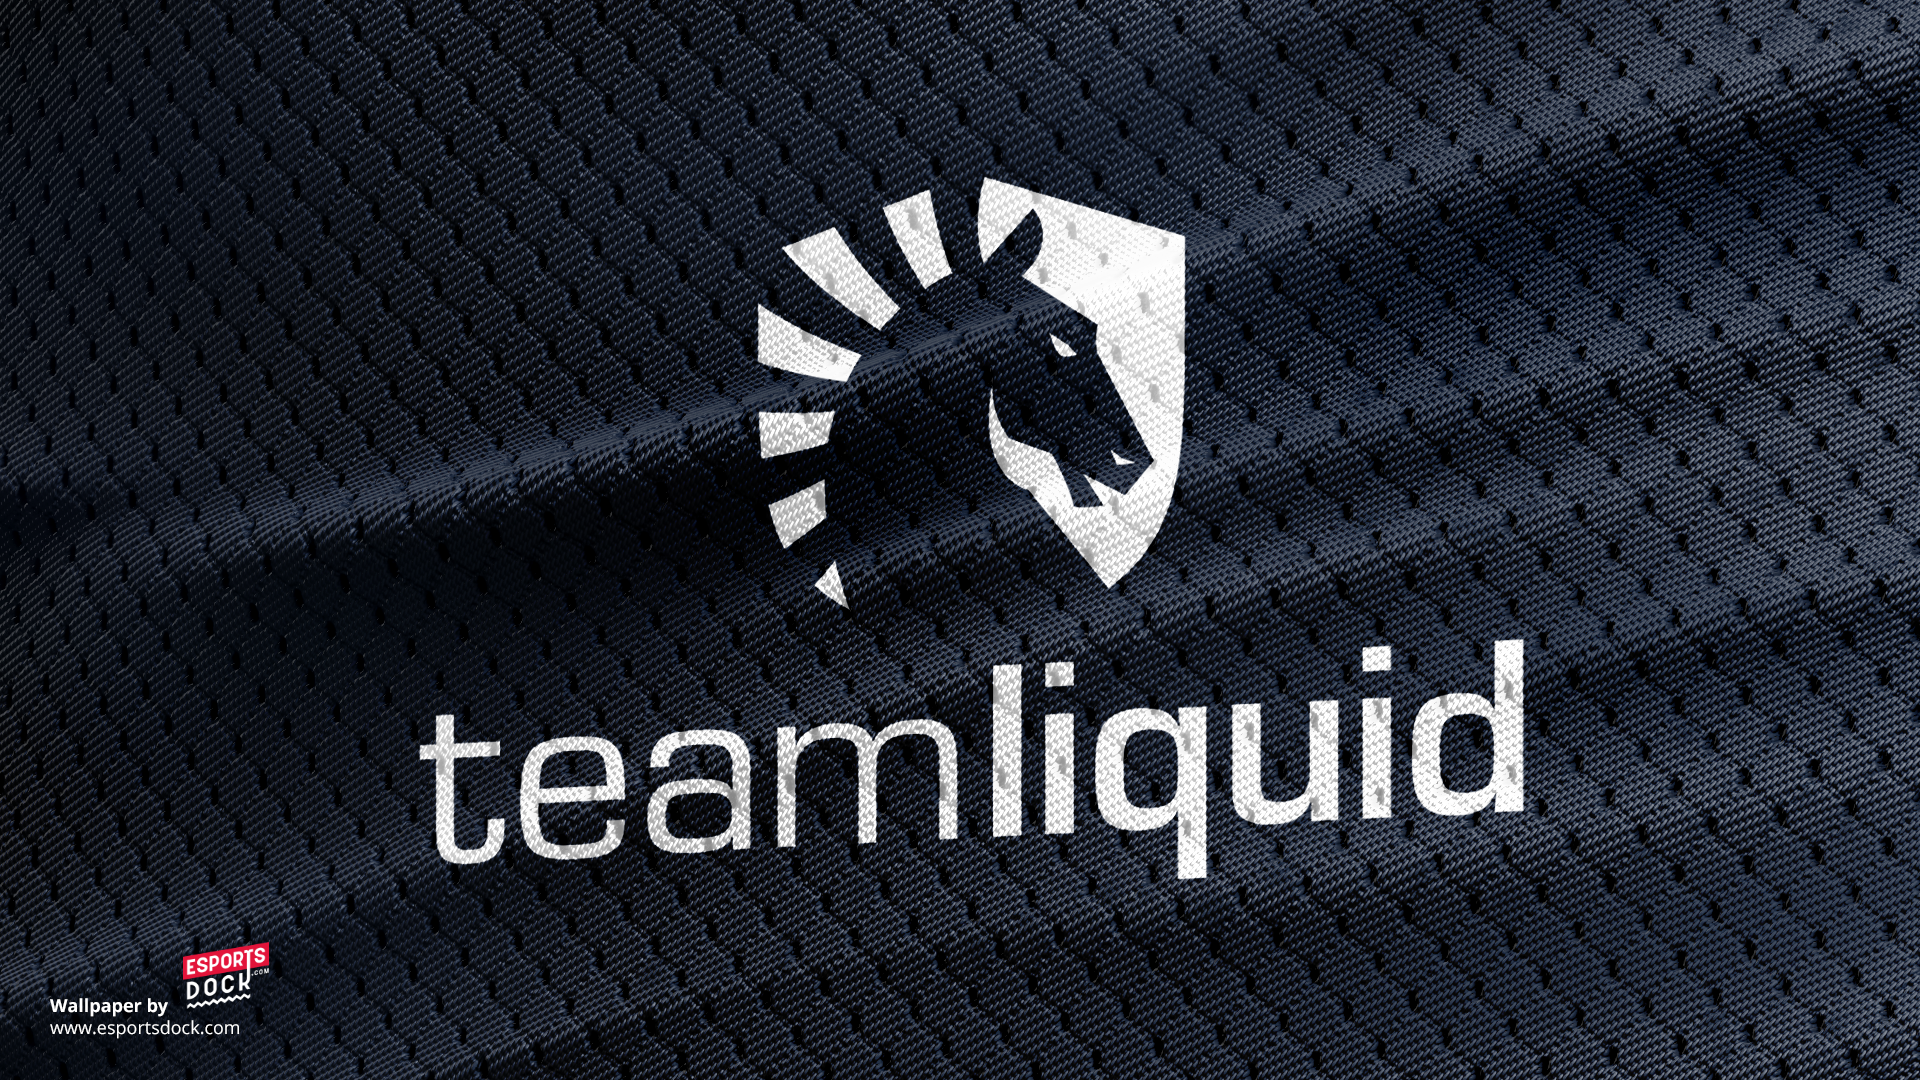 Team liquid is emerging as one of the best